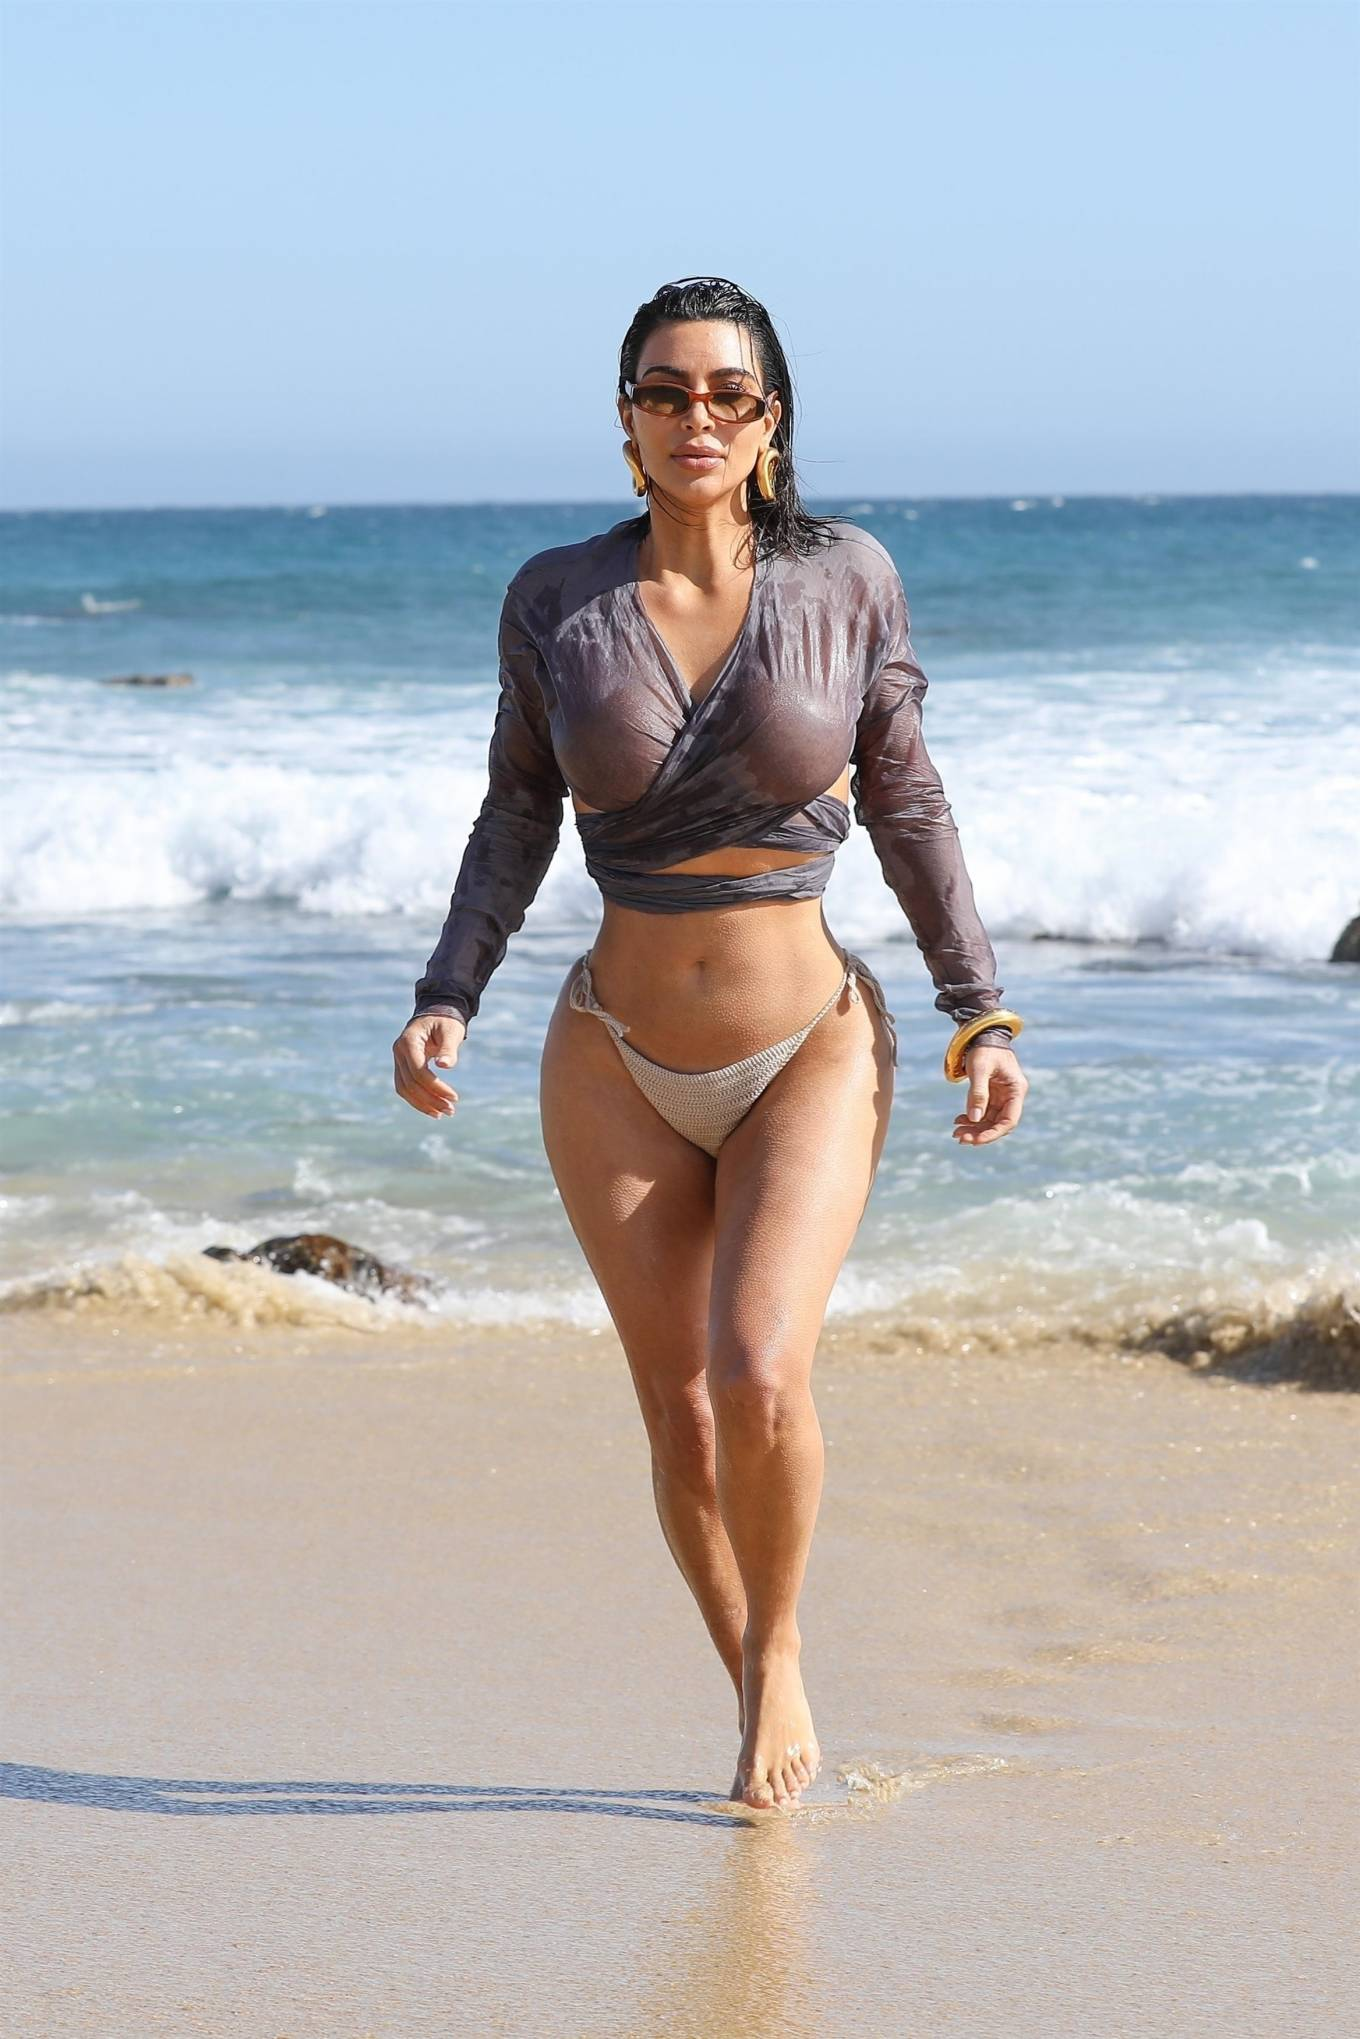 Kim Kardashian donning a see-through grey crop top with full sleeves and a V-neck